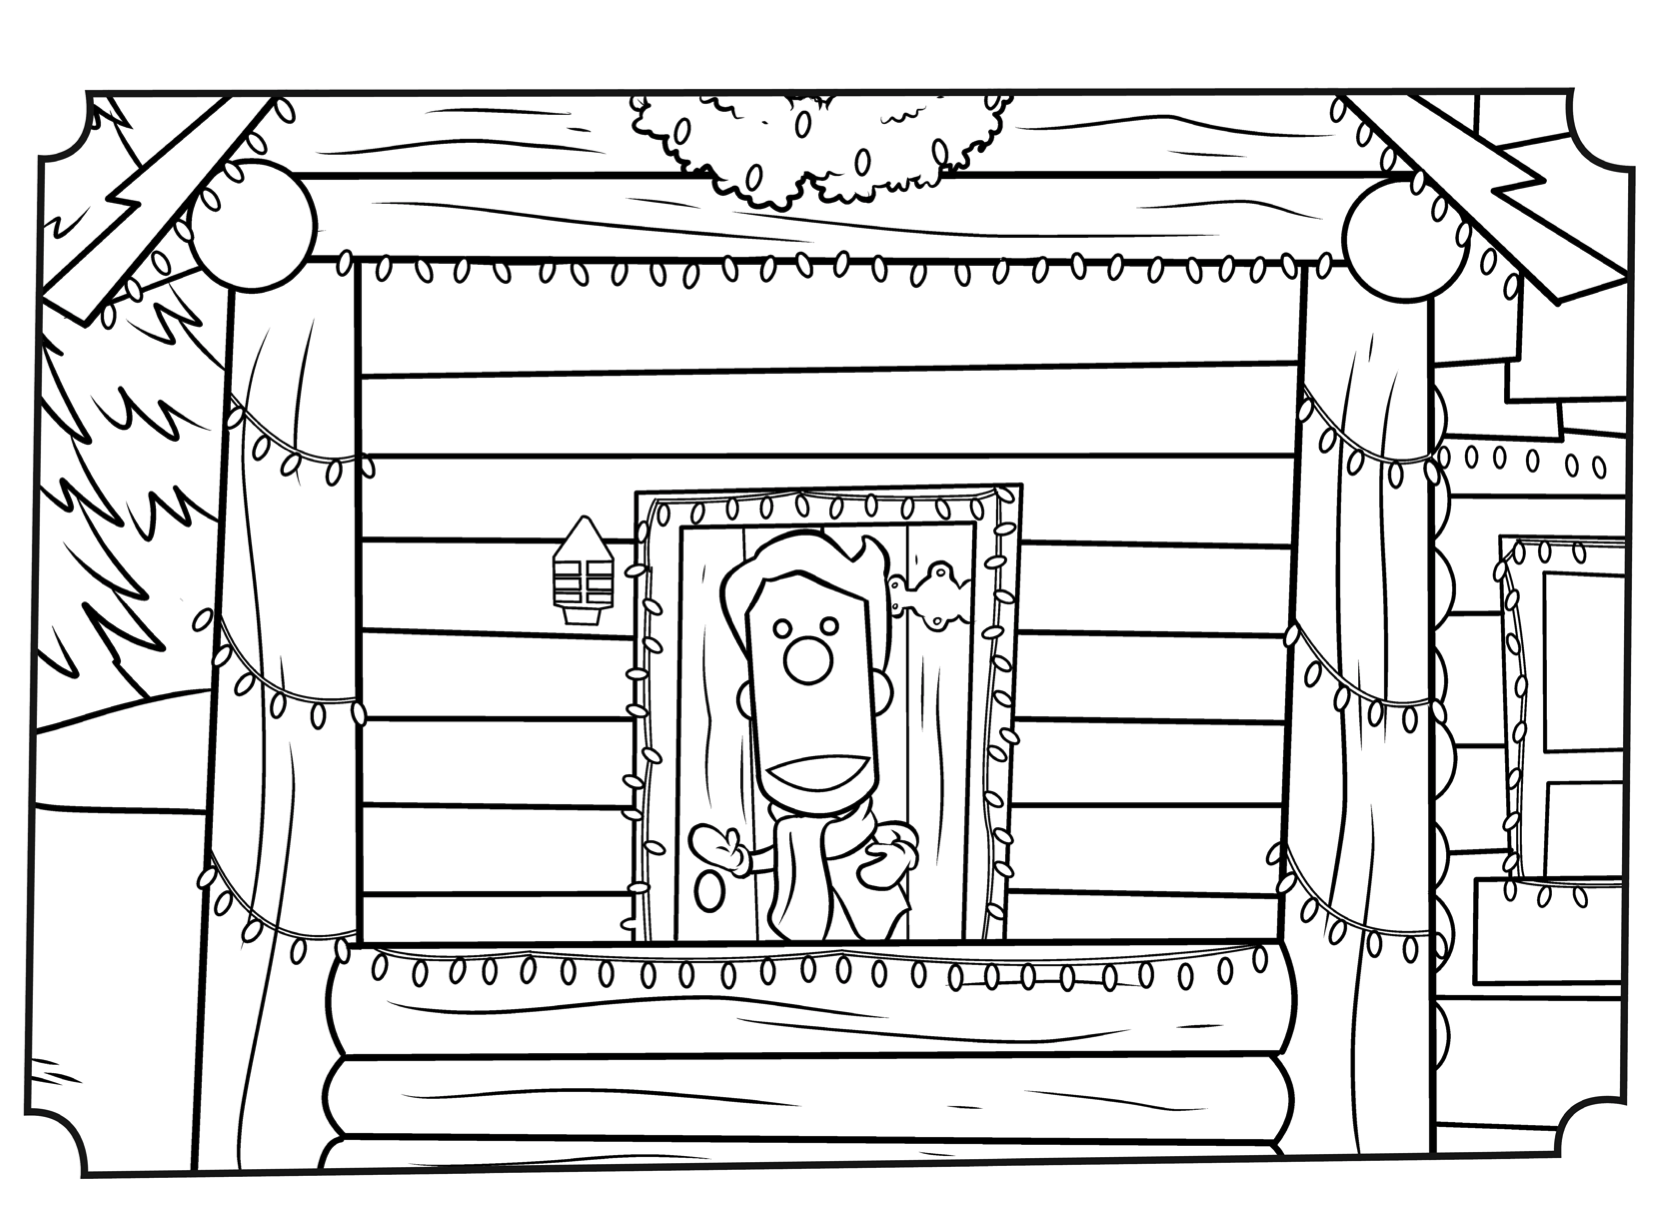 jellytelly coloring pages - photo#7